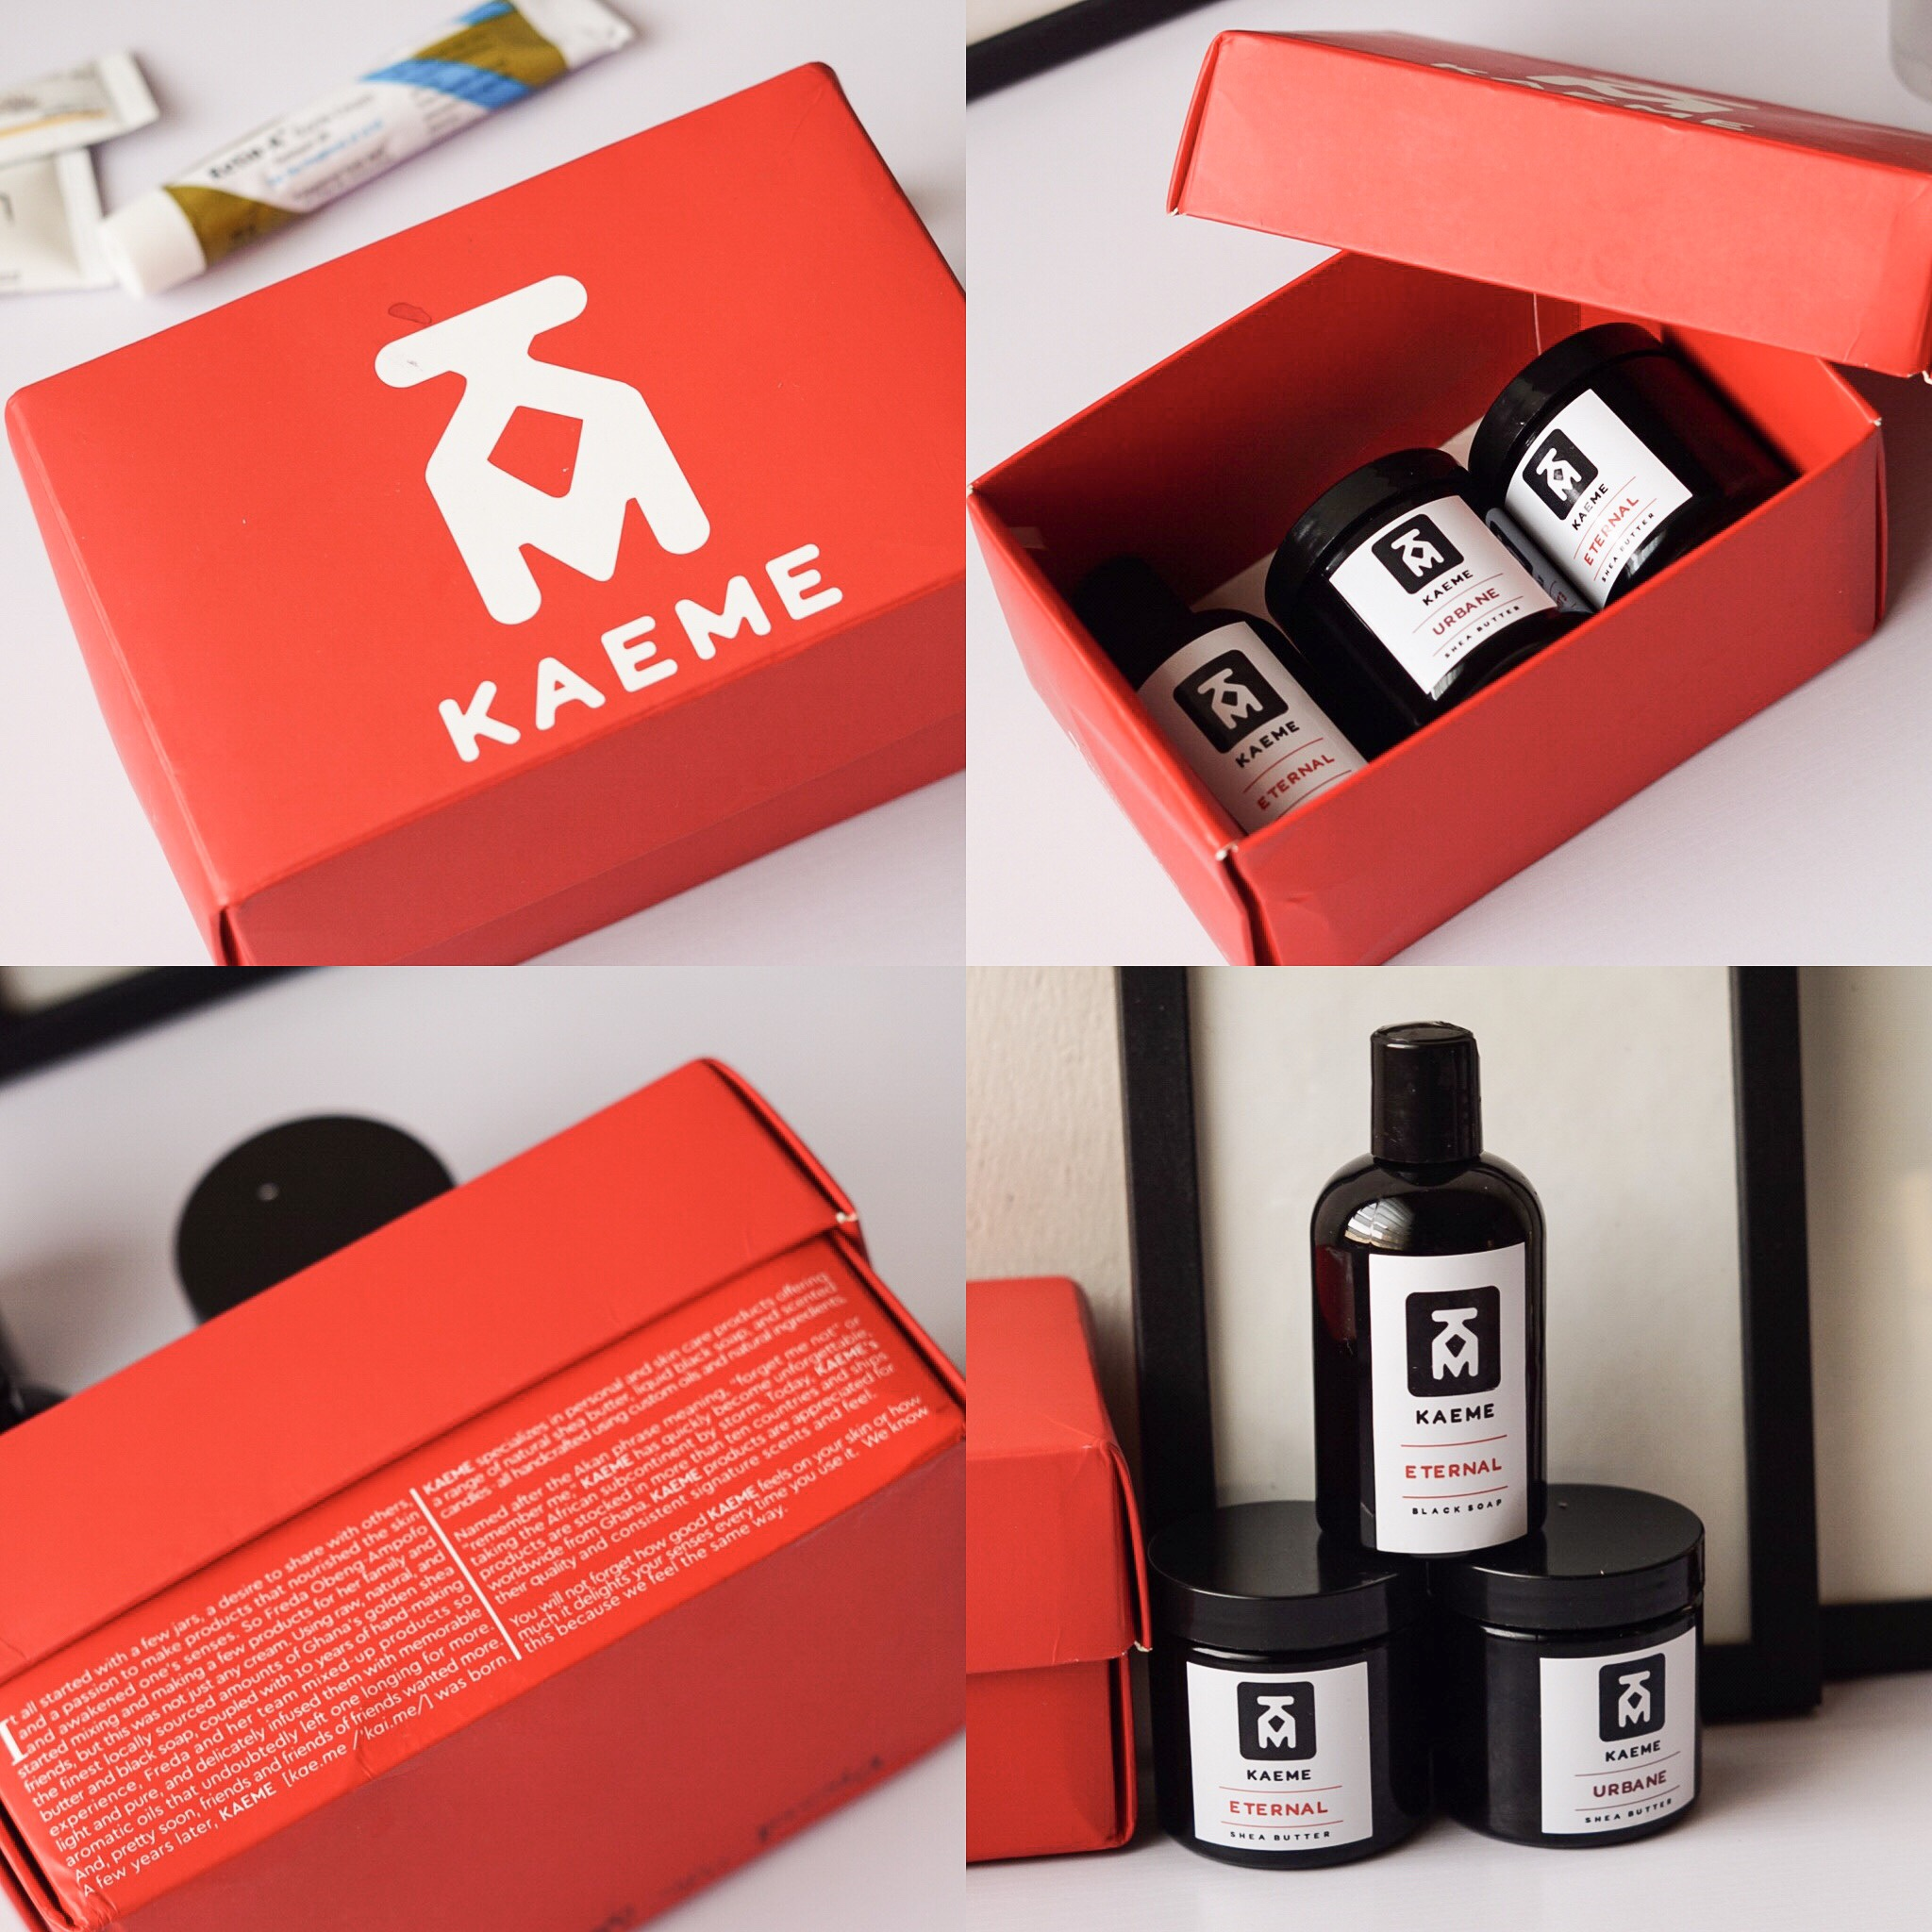 Kaeme Luxury Personal Care brand